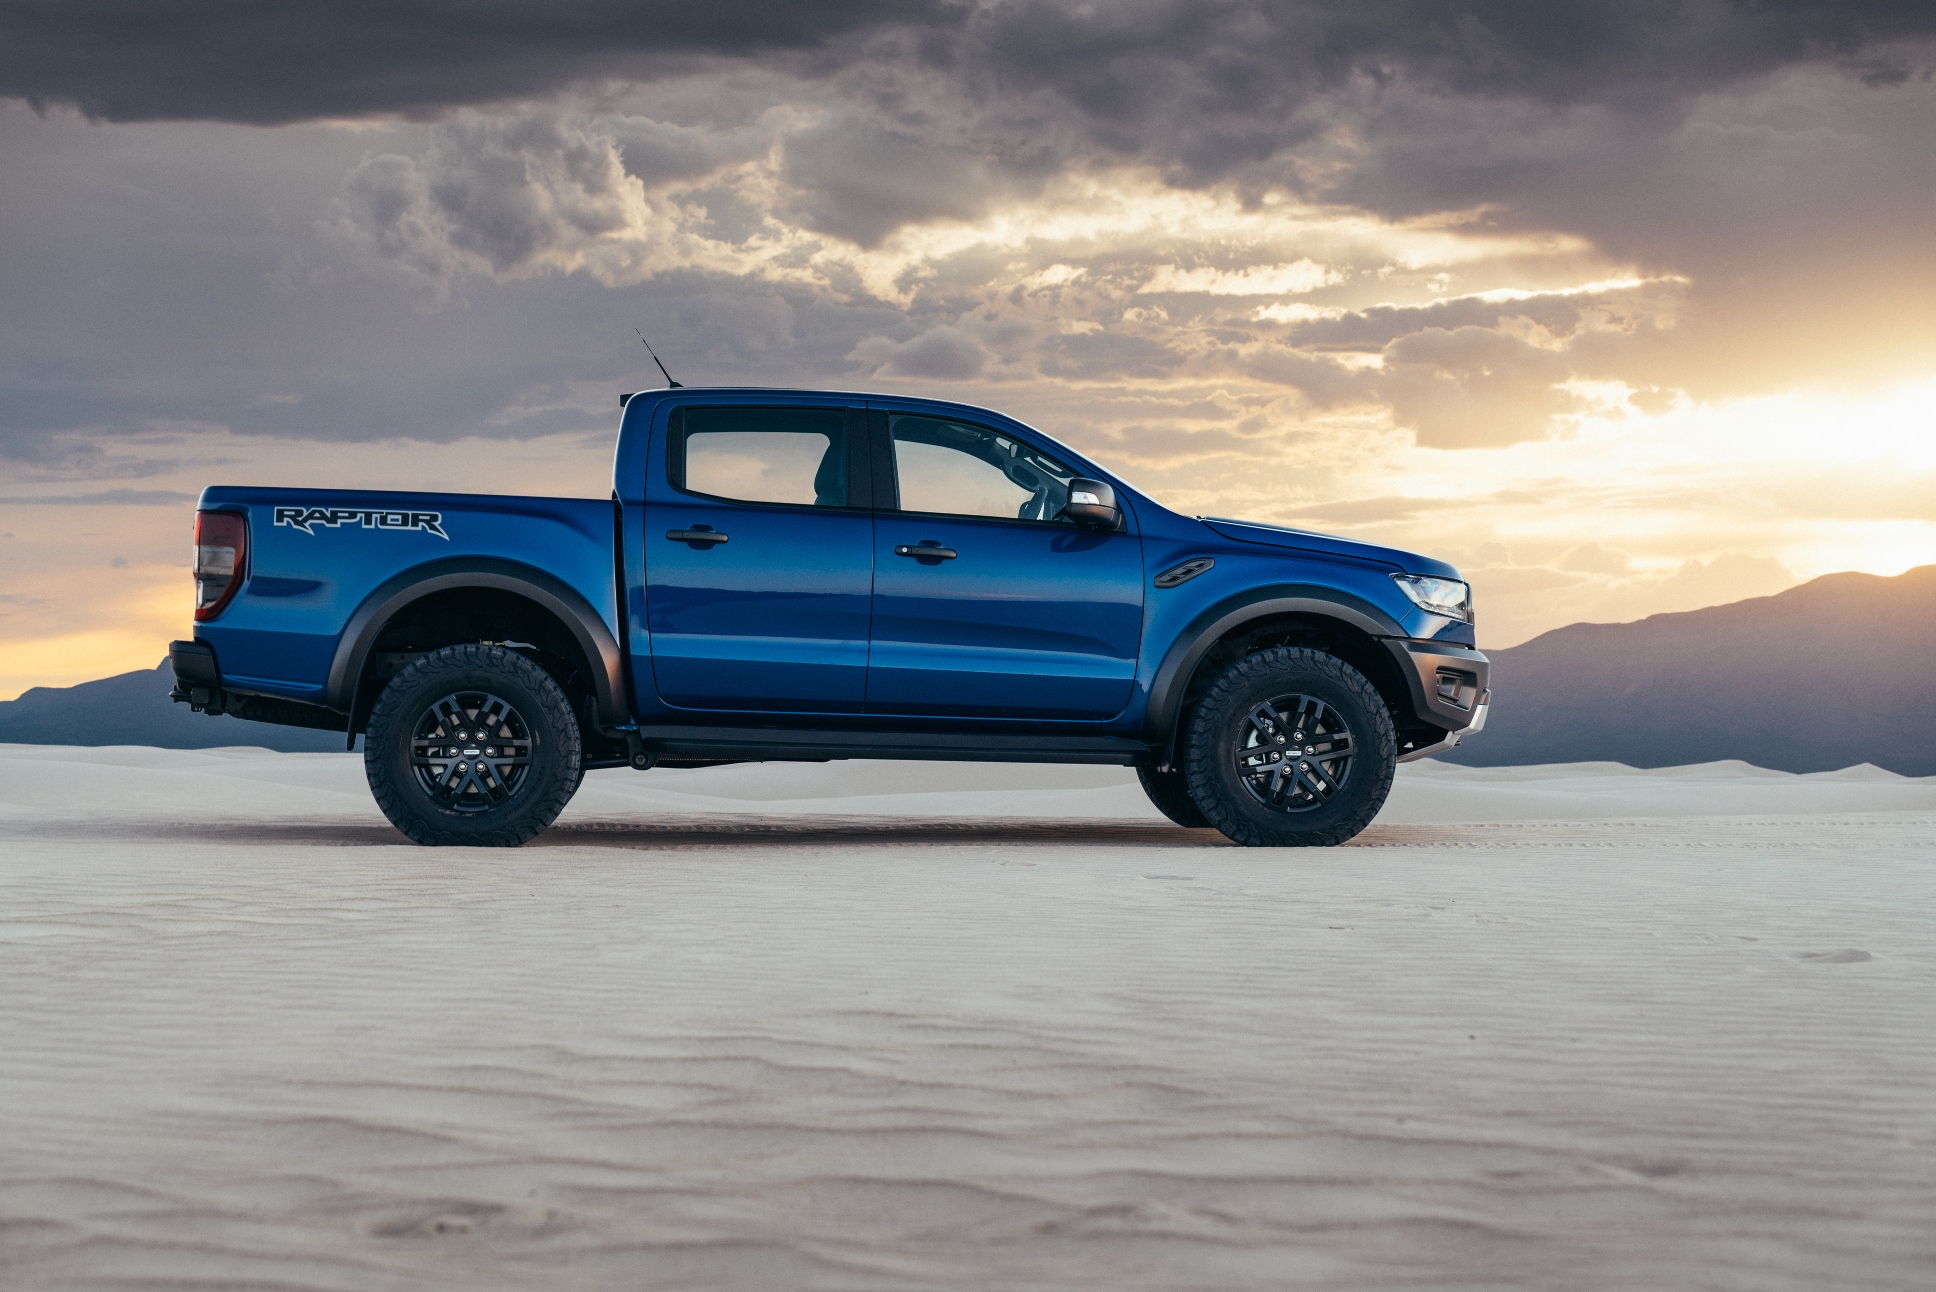 Ford unveils new Ranger Raptor pickup